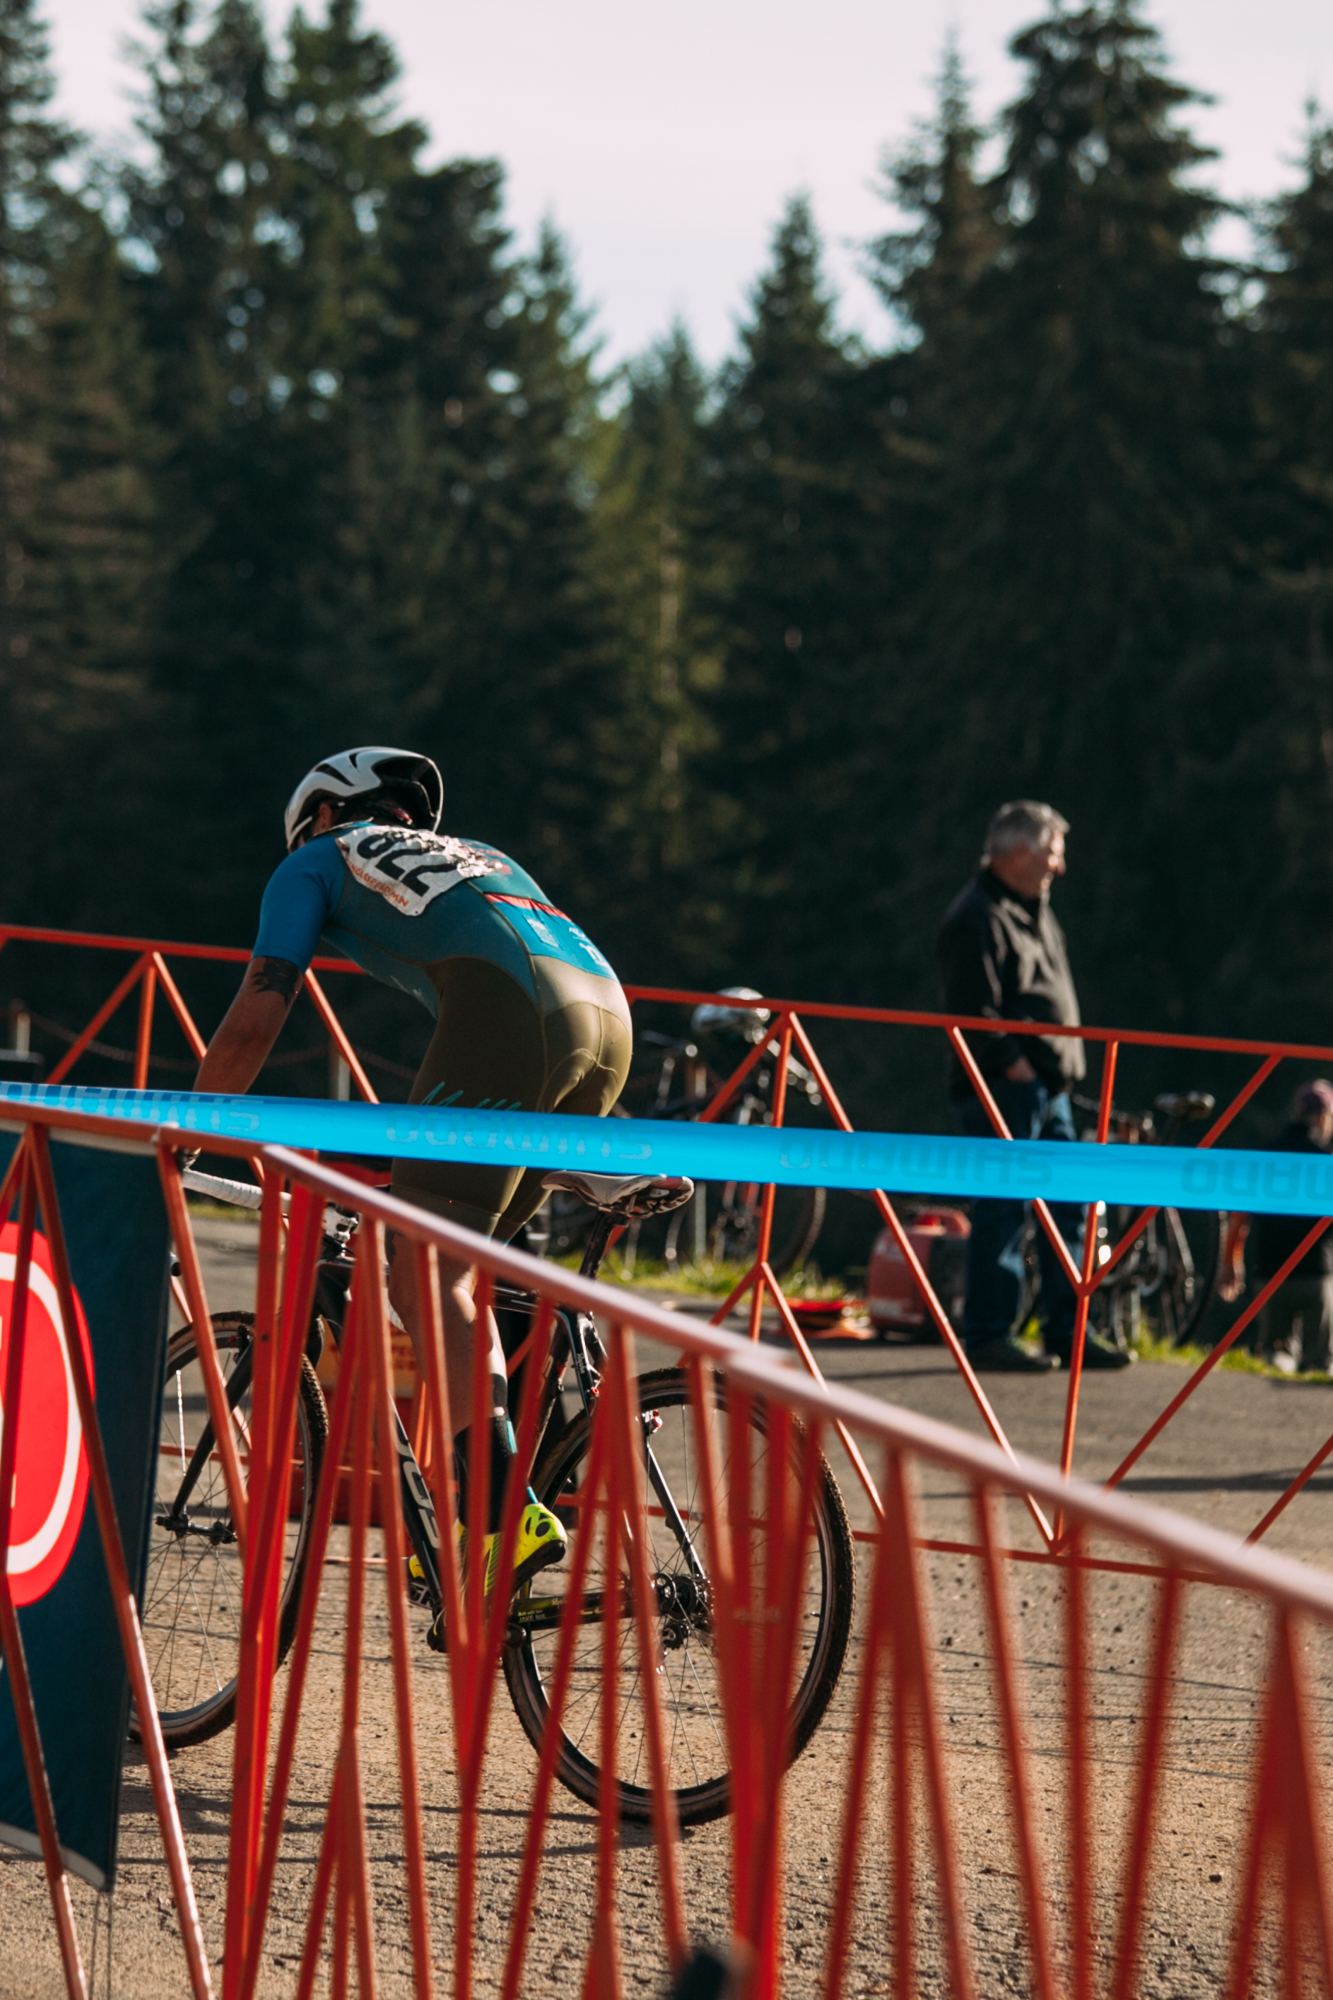 Cyclocross18_CCCX_RainierHS-174-mettlecycling.jpg